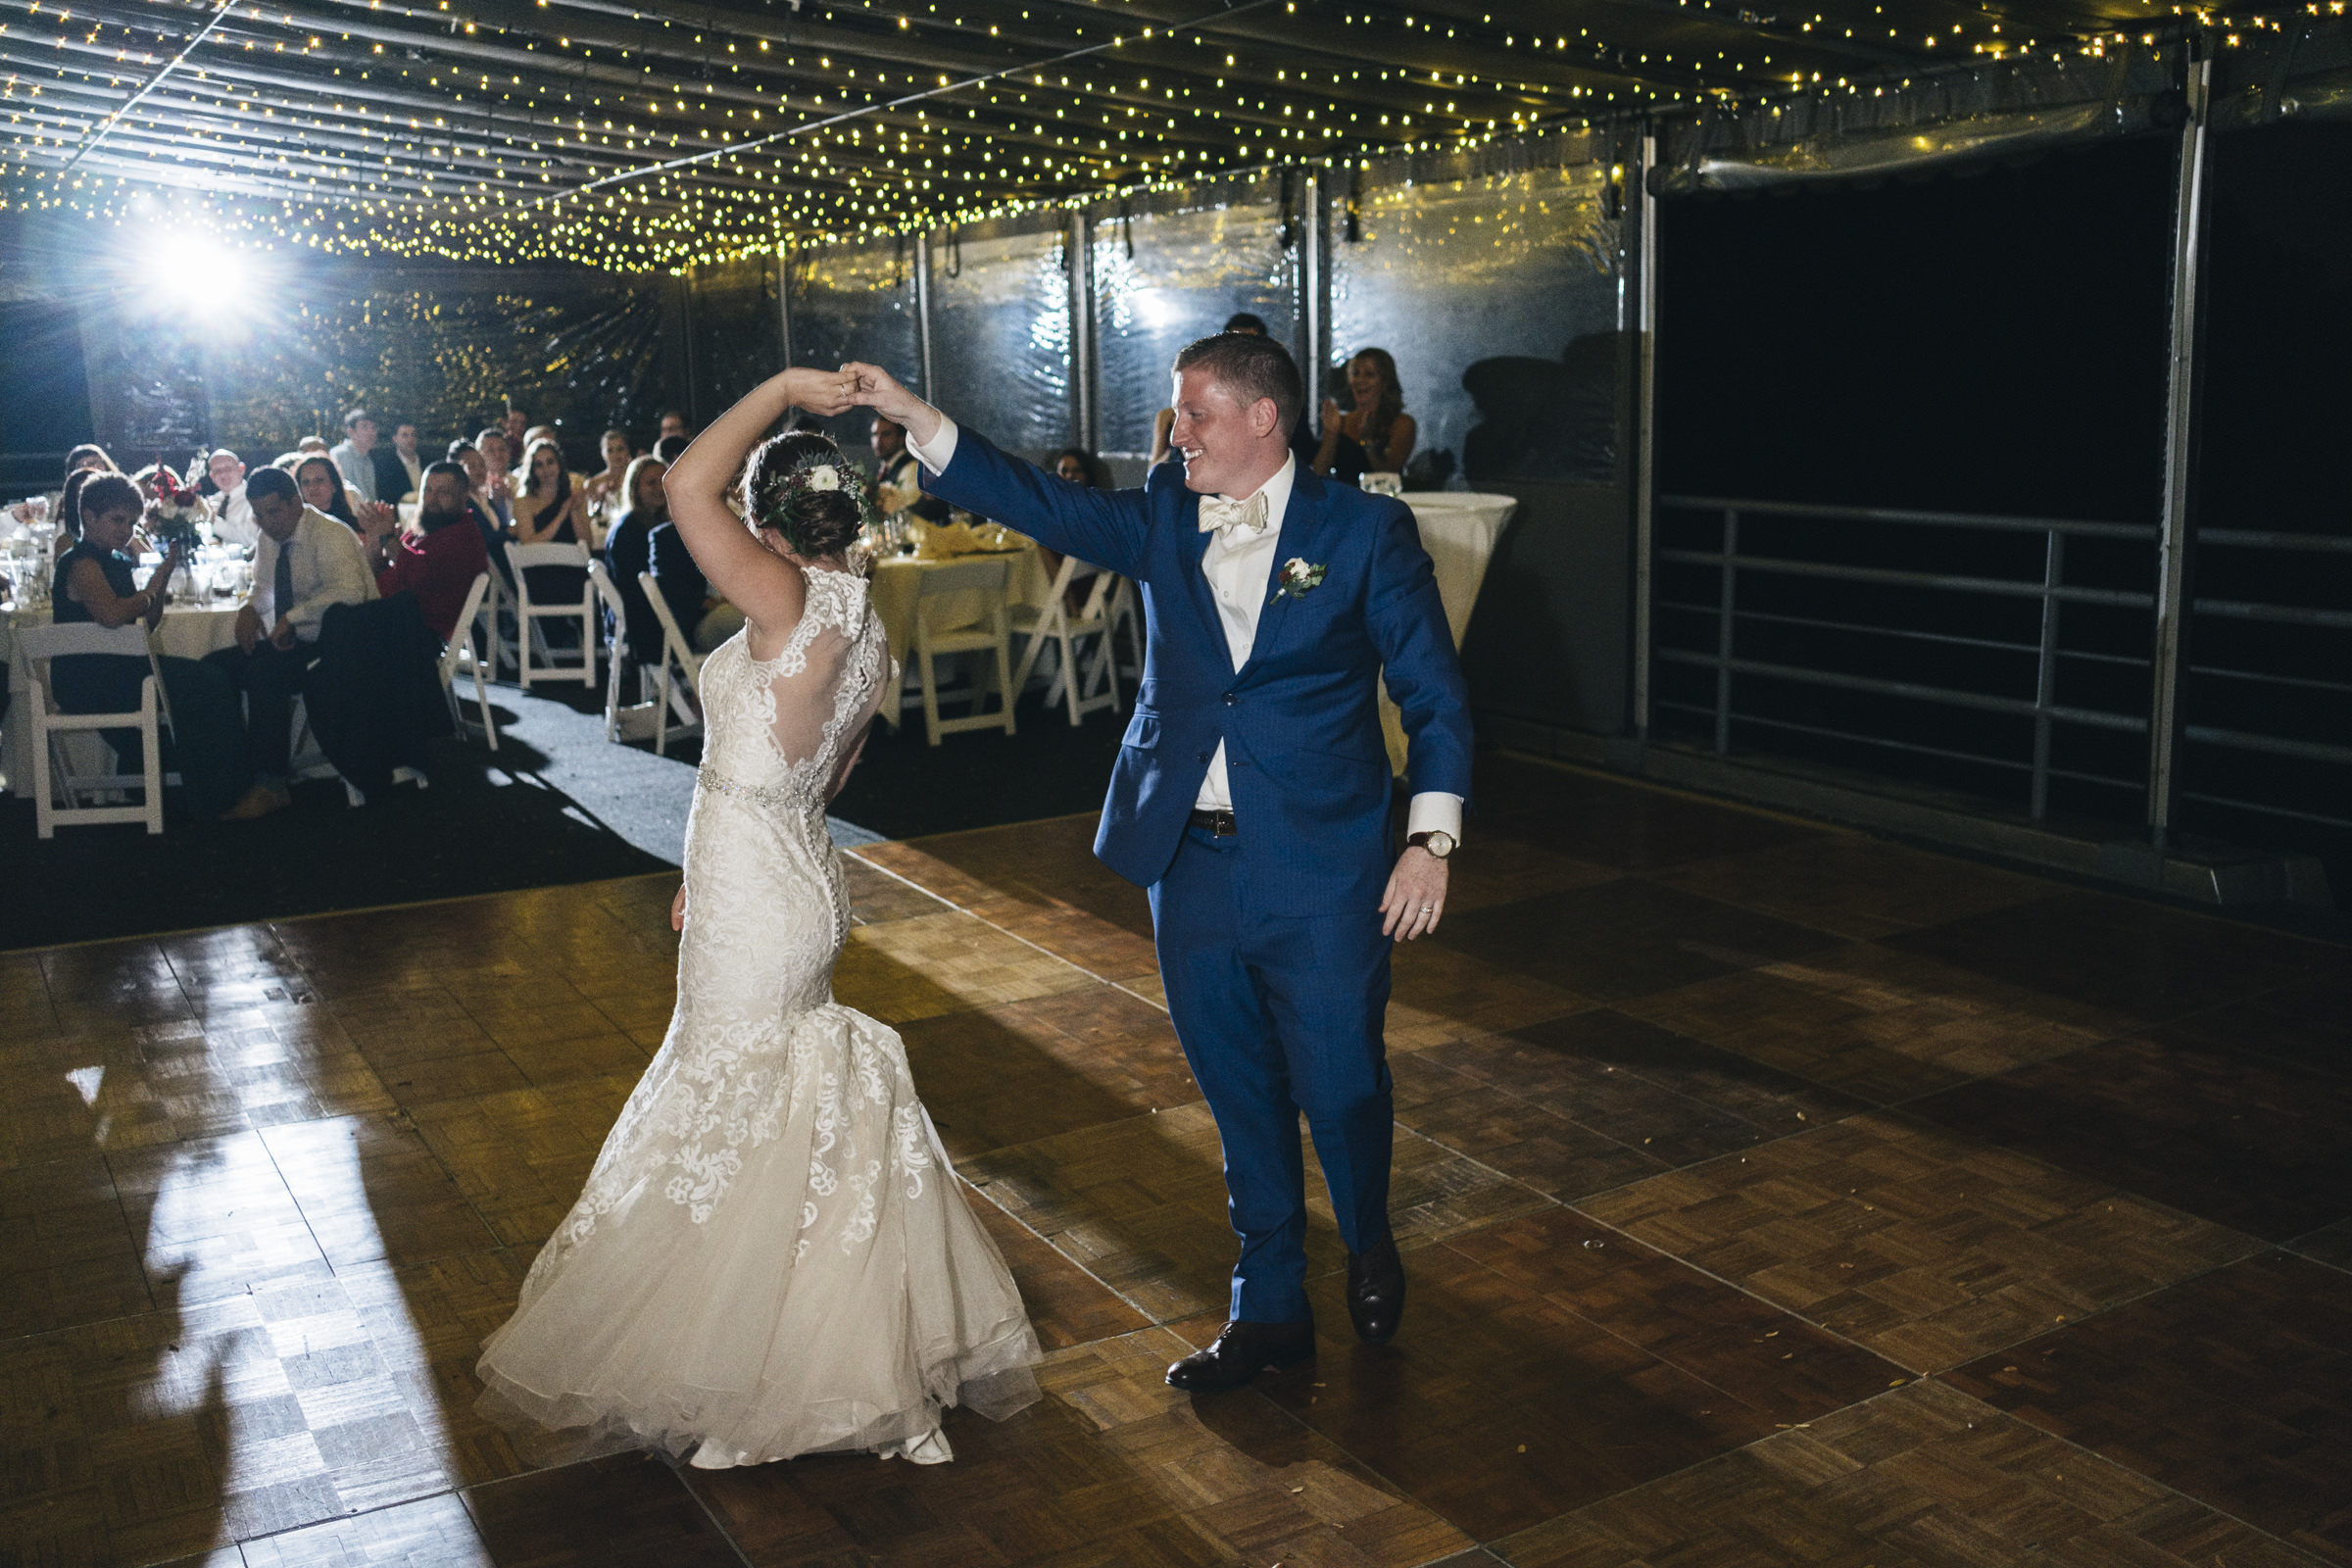 The bride spins during her first dance with her new husband at her wedding reception in Perrysburg Ohio